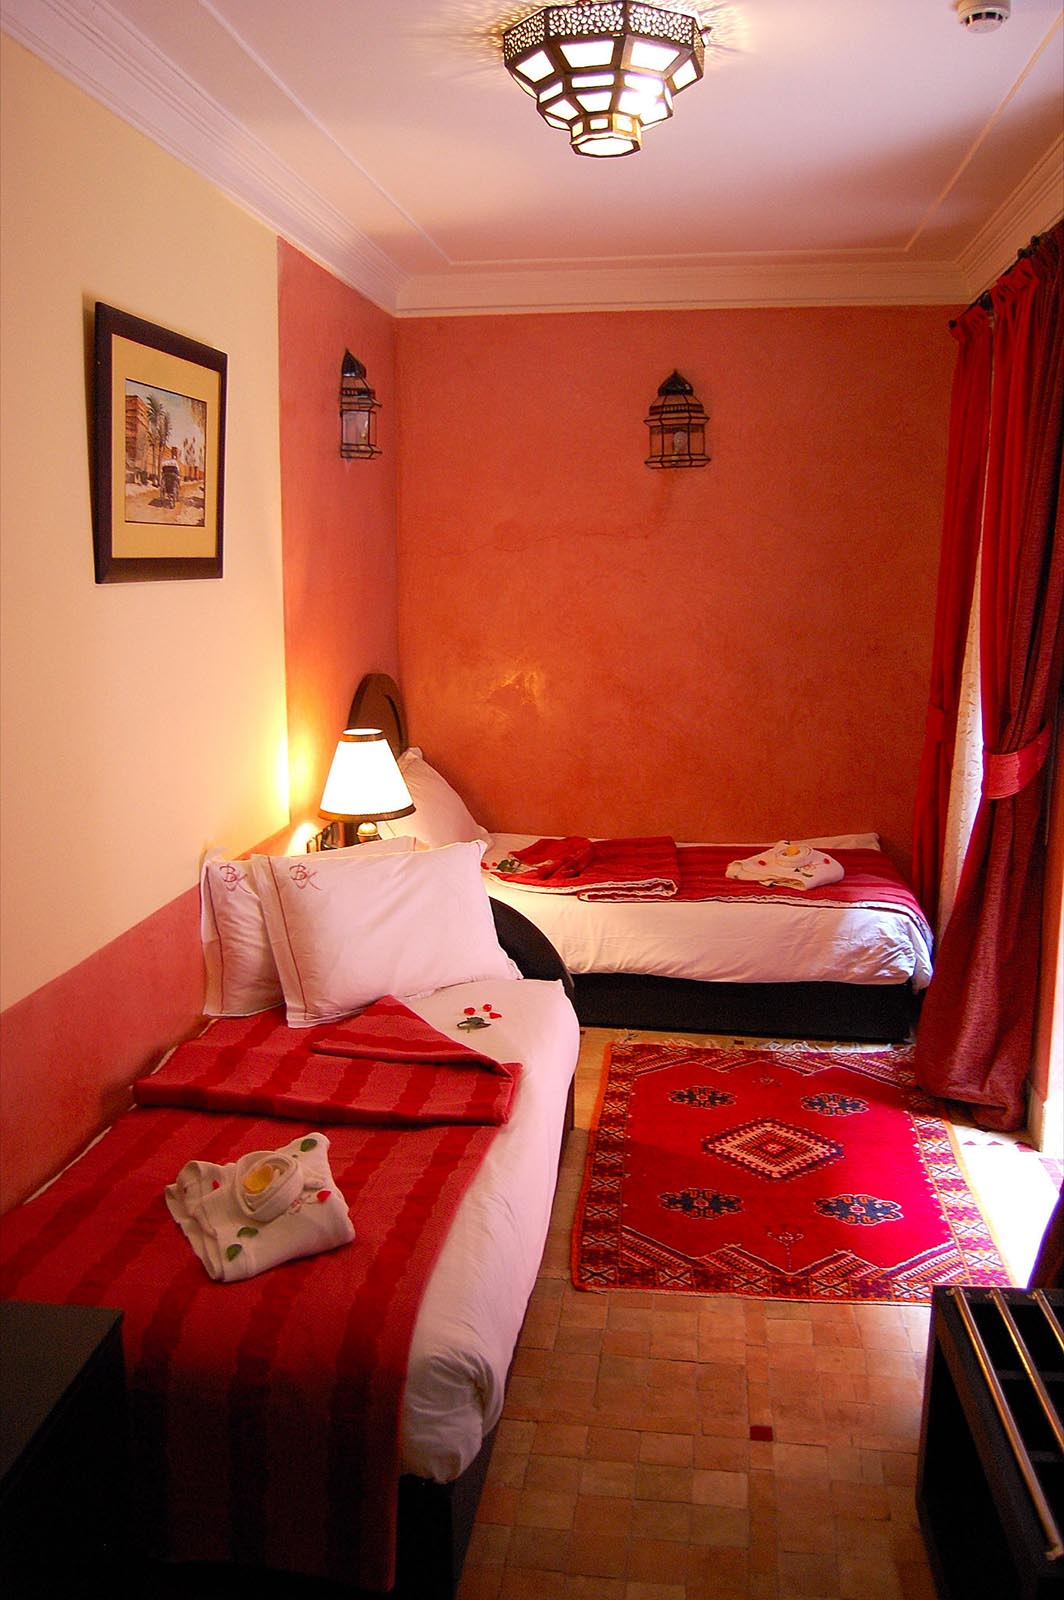 Small Room (2 beds) 102